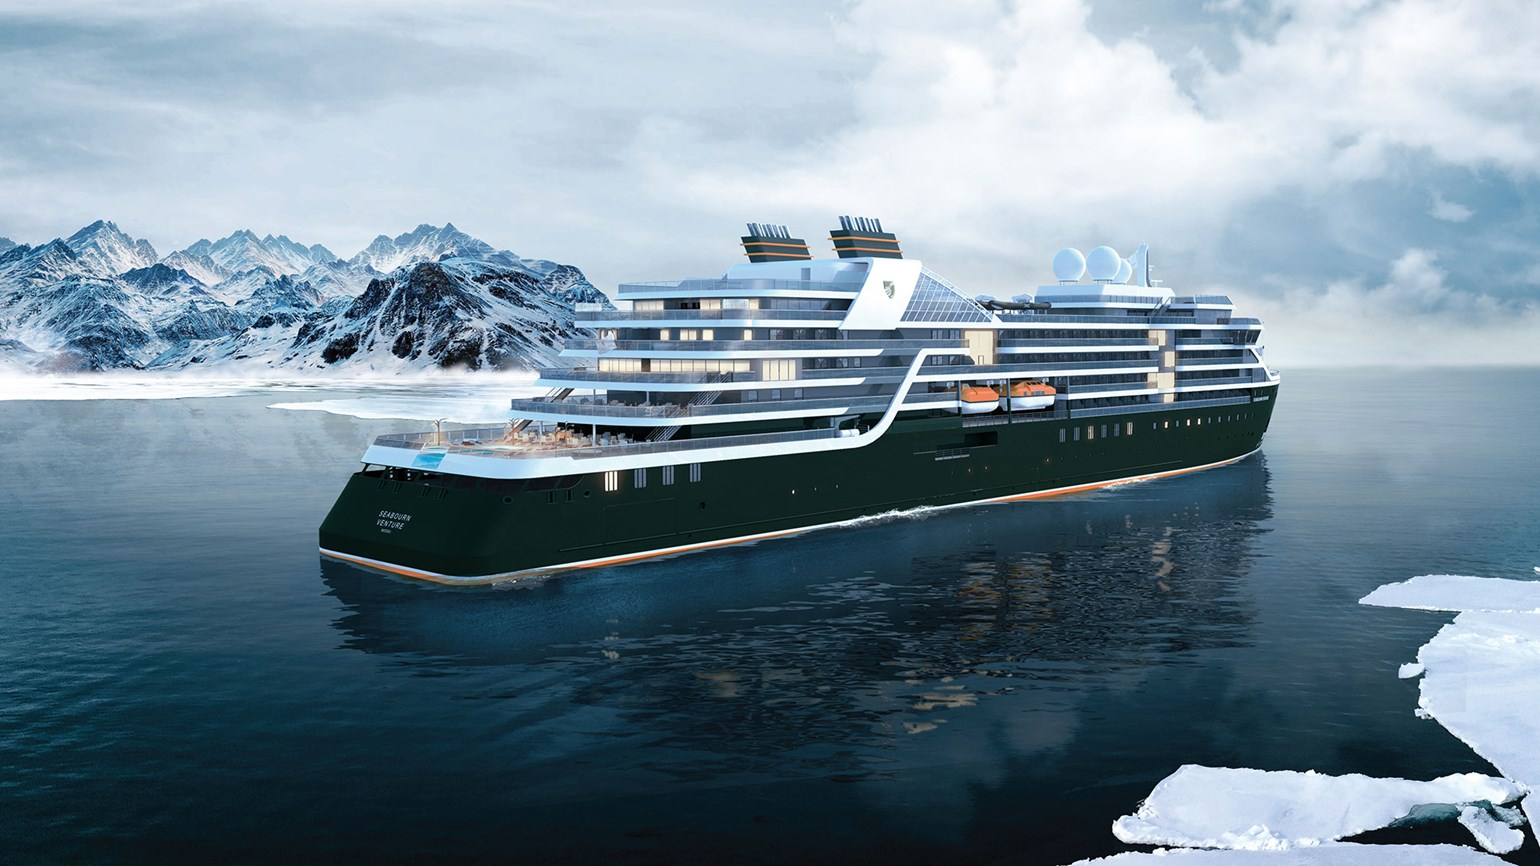 Work begins on second Seabourn expedition ship